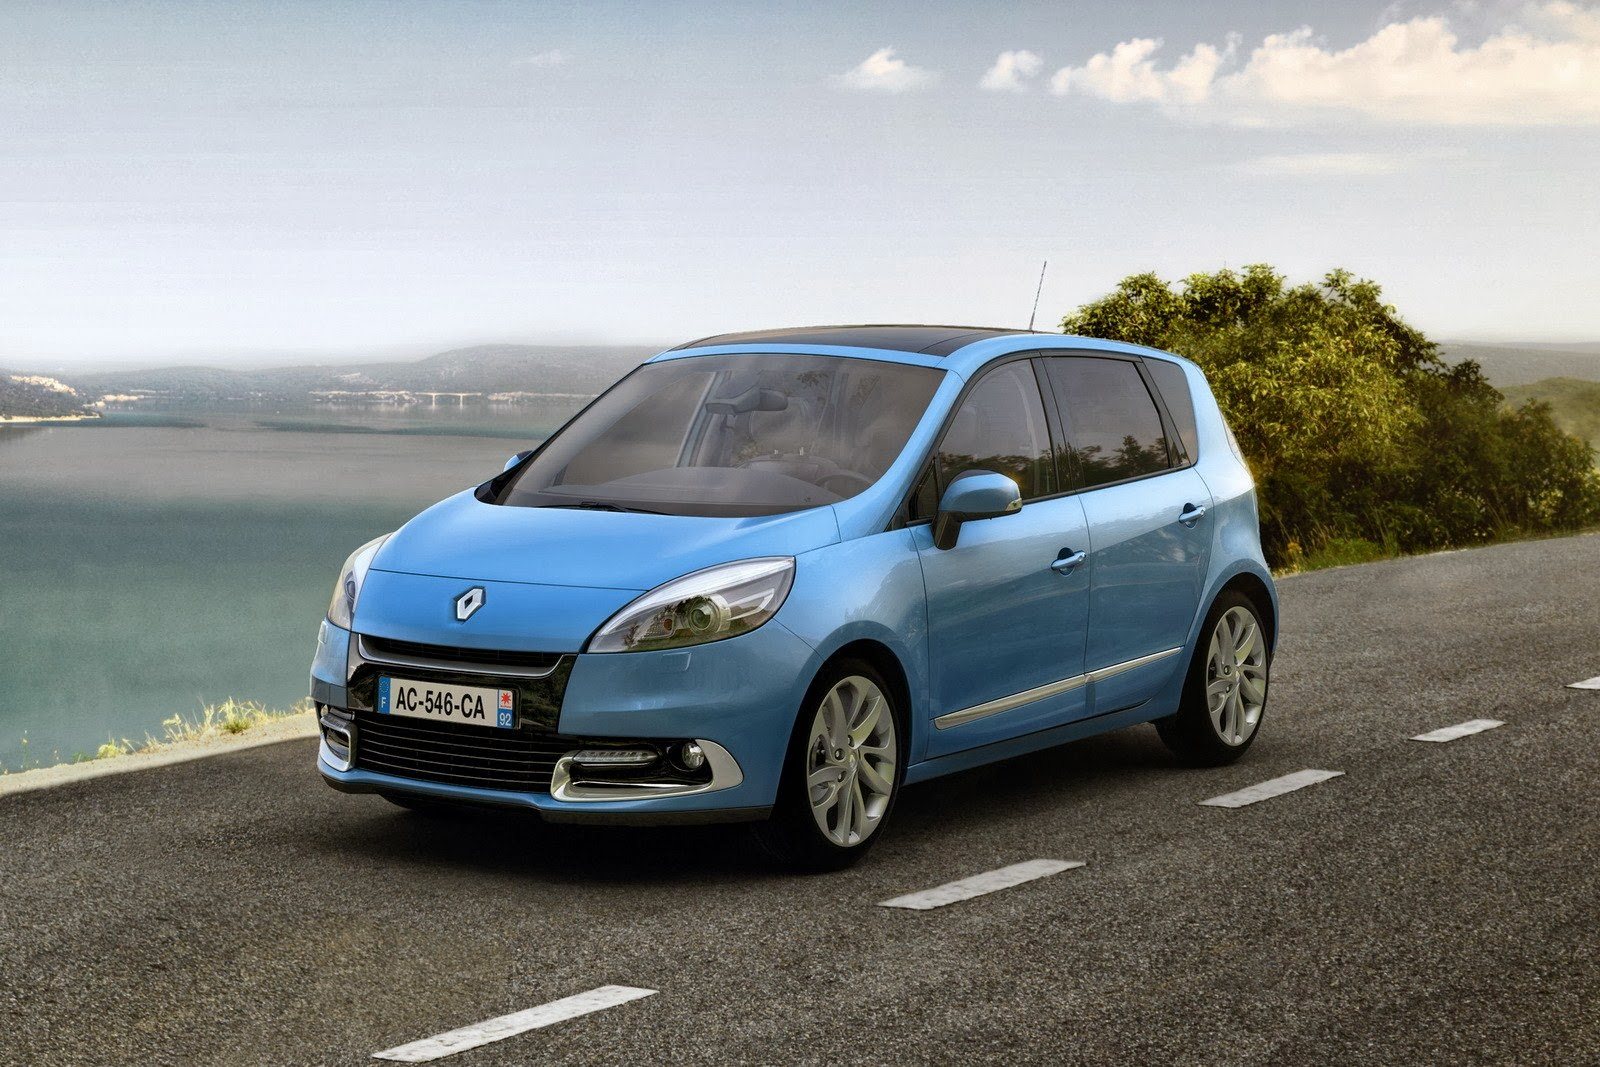 renault scenic car wallpaper. Black Bedroom Furniture Sets. Home Design Ideas